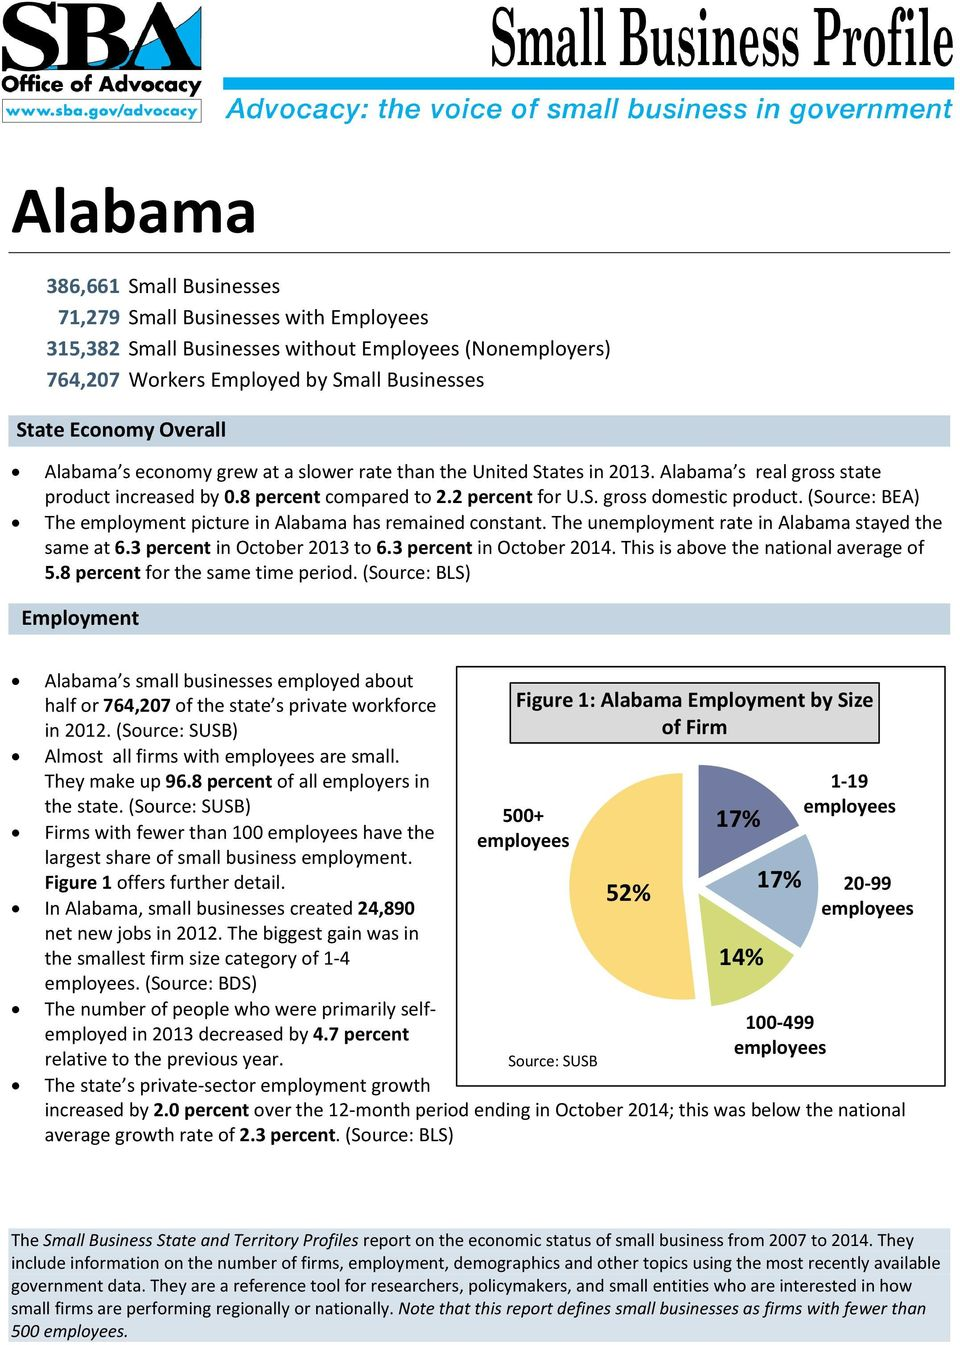 (Source: BEA) The employment picture in Alabama has remained constant. The unemployment rate in Alabama stayed the same at 6.3 percent in October 2013 to 6.3 percent in October 2014.